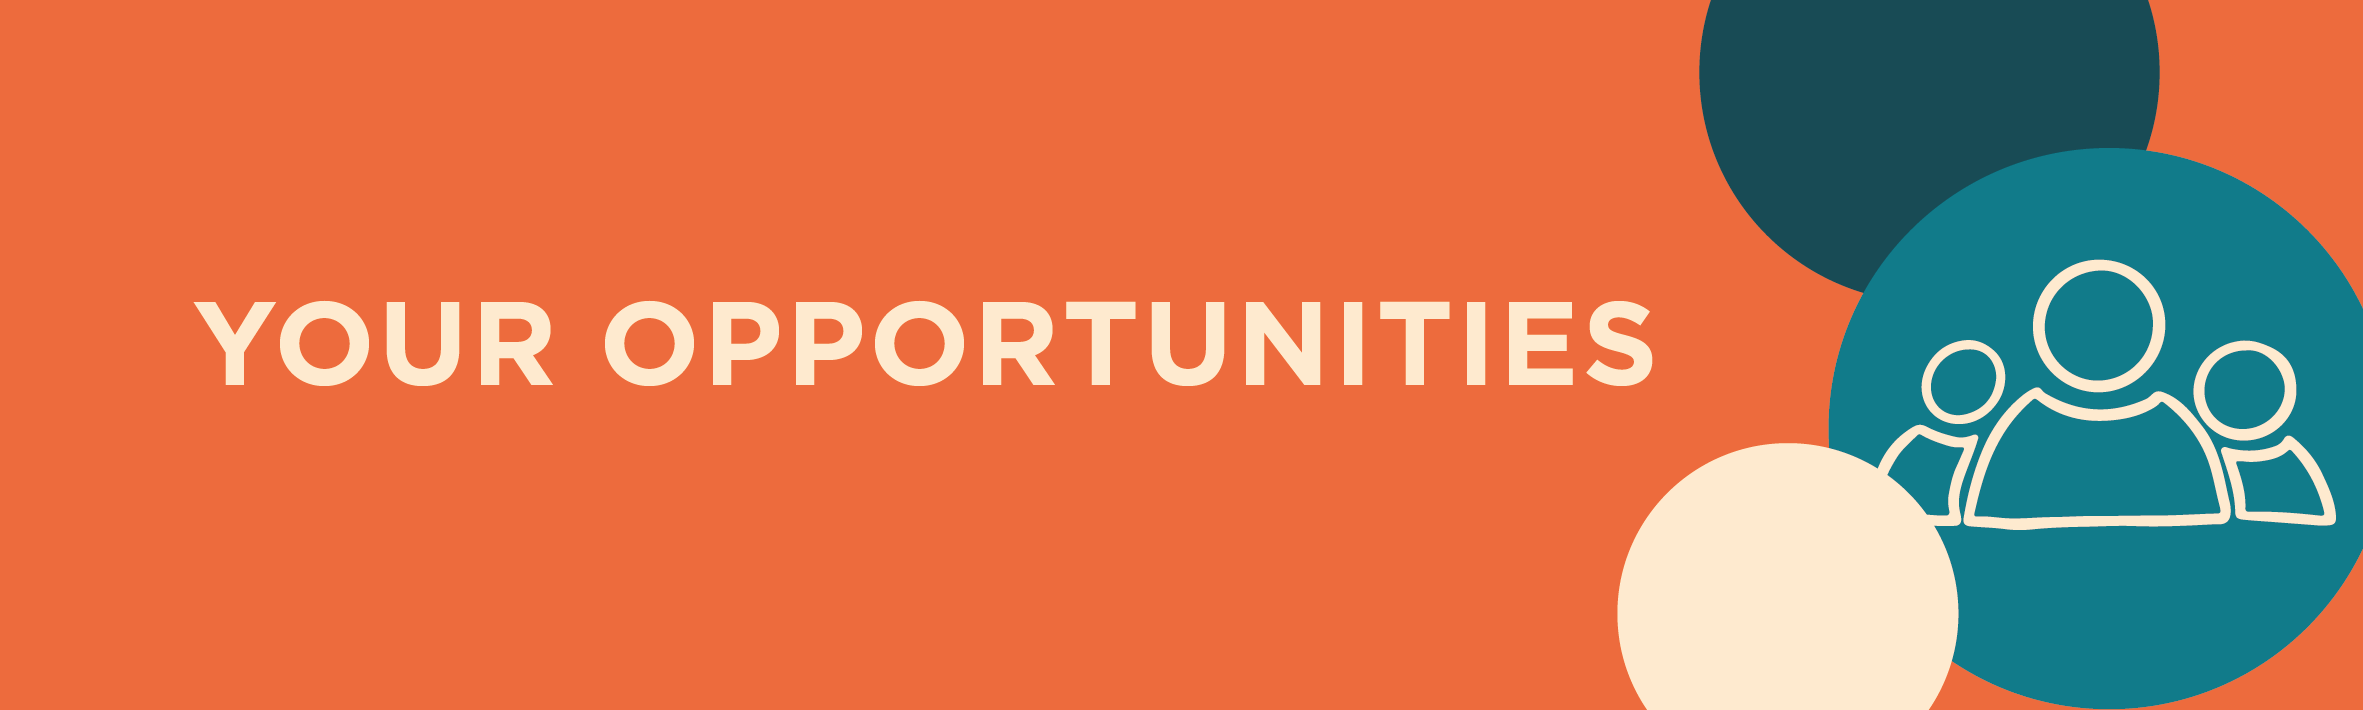 Opportunities Header